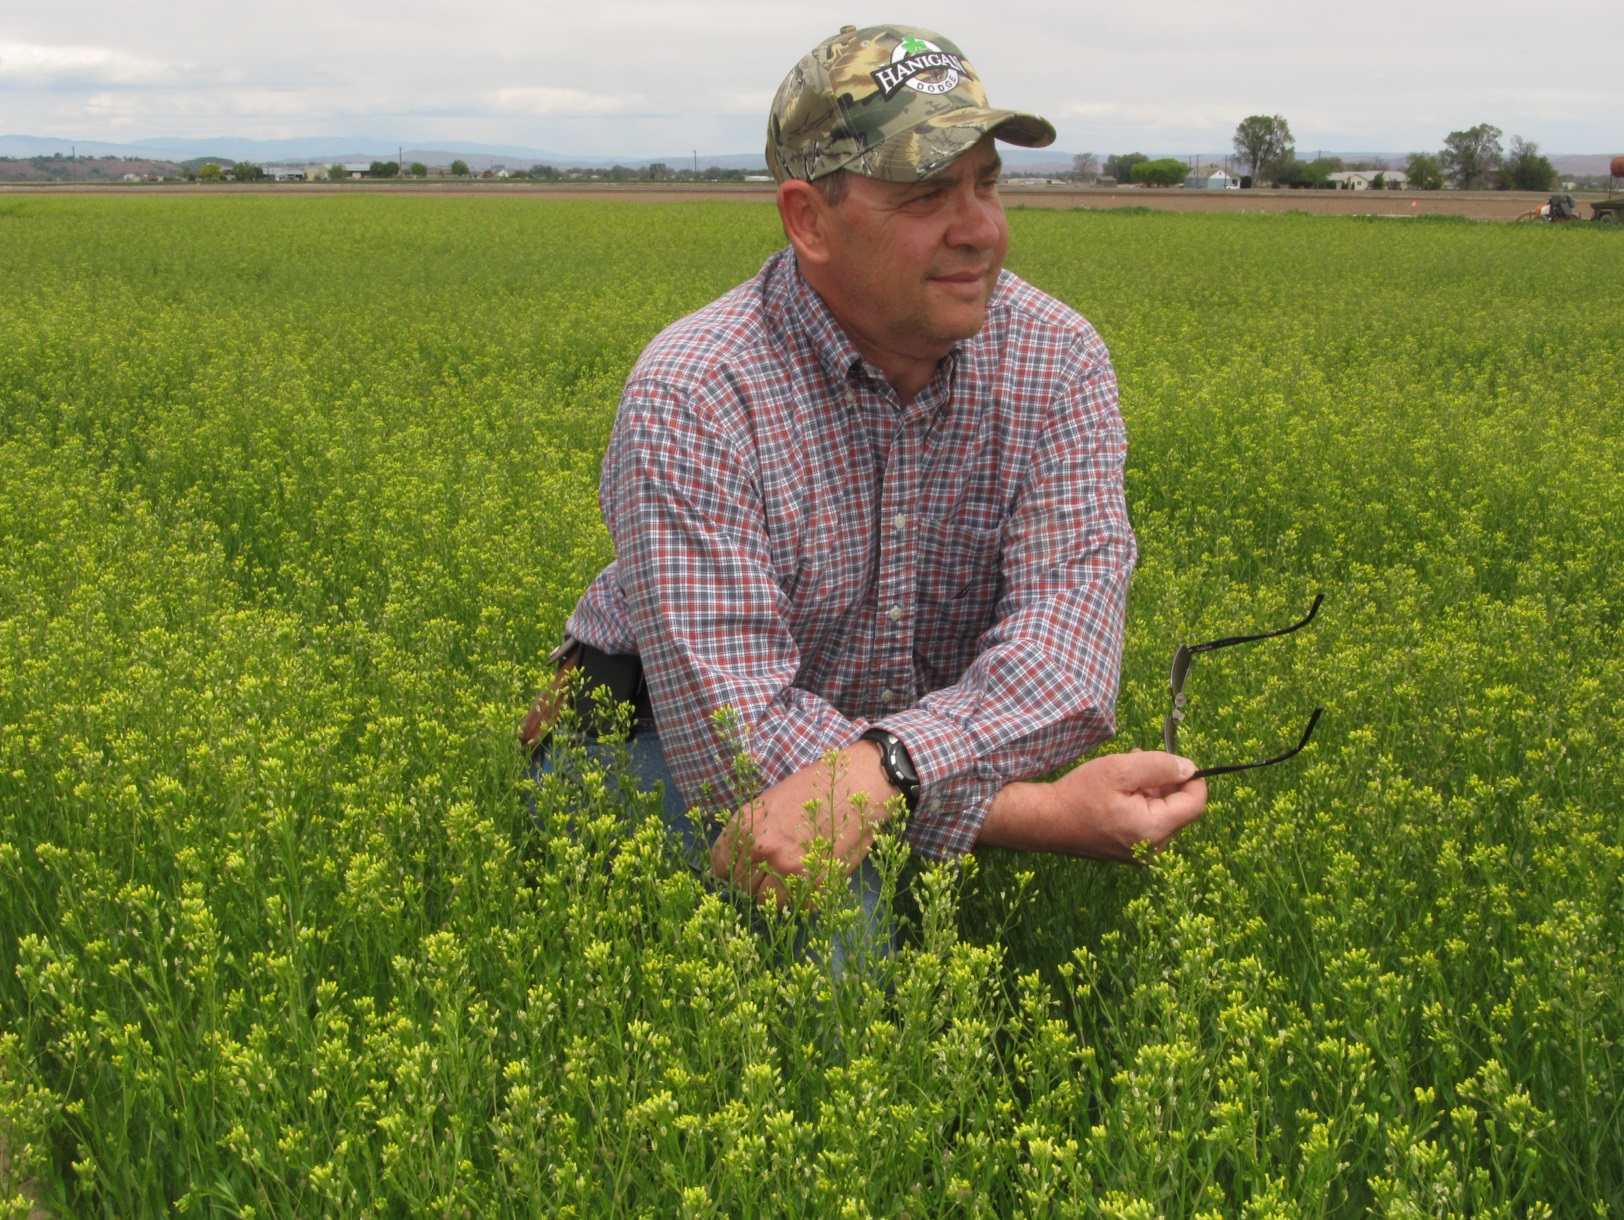 Monty Saunders, Biological Sciences Research Technician and Farm Foreman, in camelina research plots at the Oregon State University Malheur Experiment Station, May 6, 2015. The camelina was grown without irrigation.